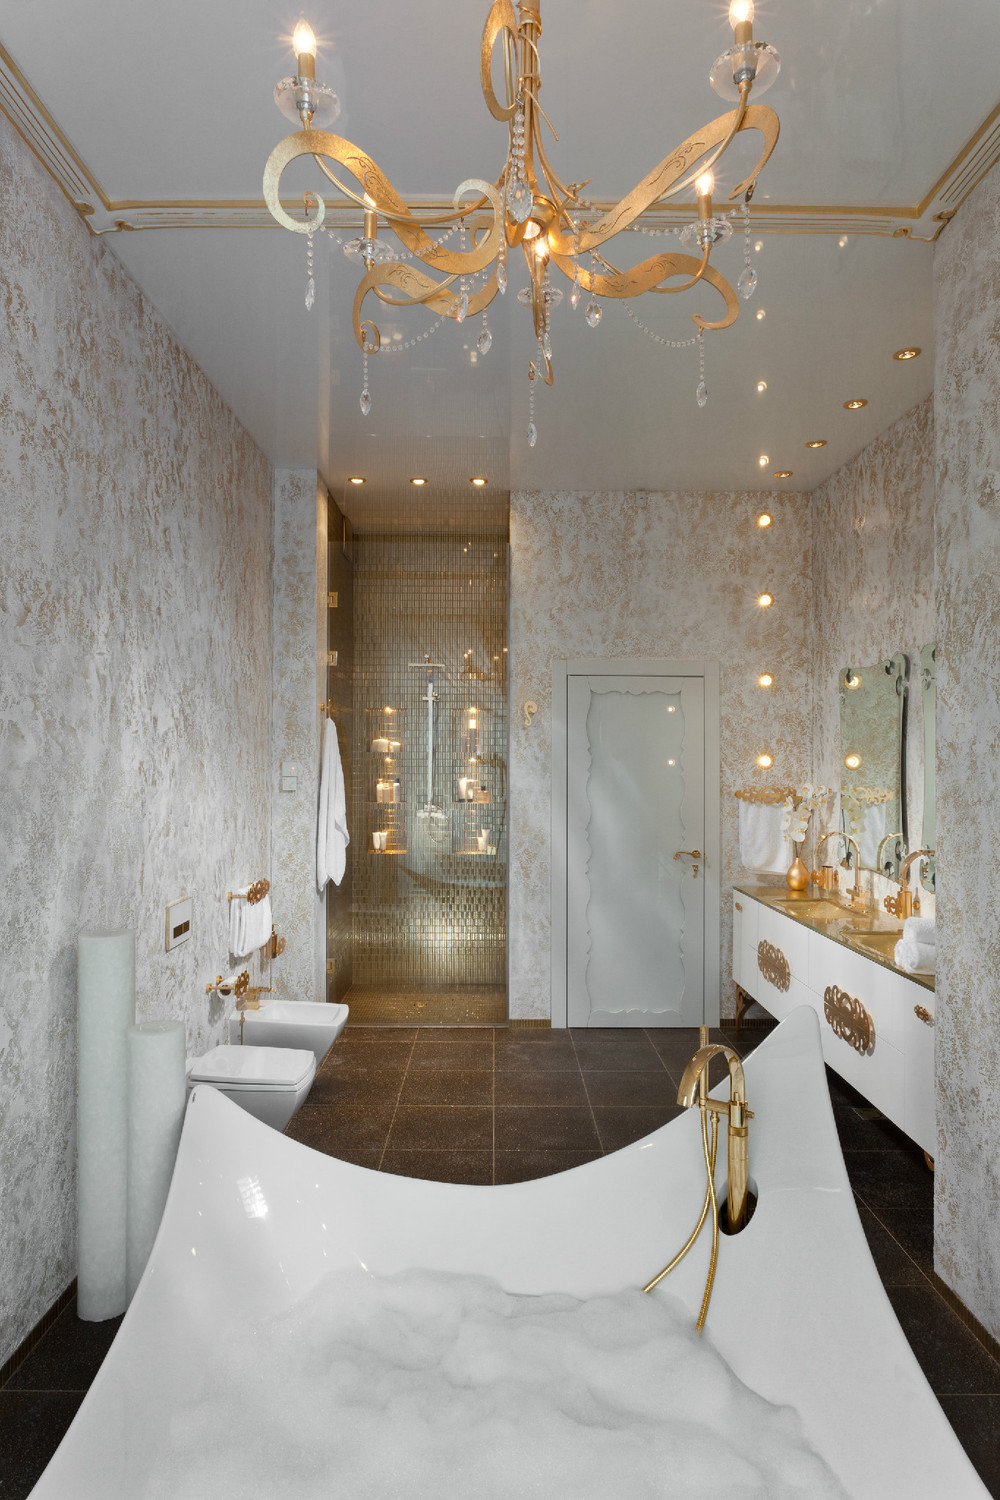 Gold white bathroom fixtures interior design ideas for Salle de bain mosaique